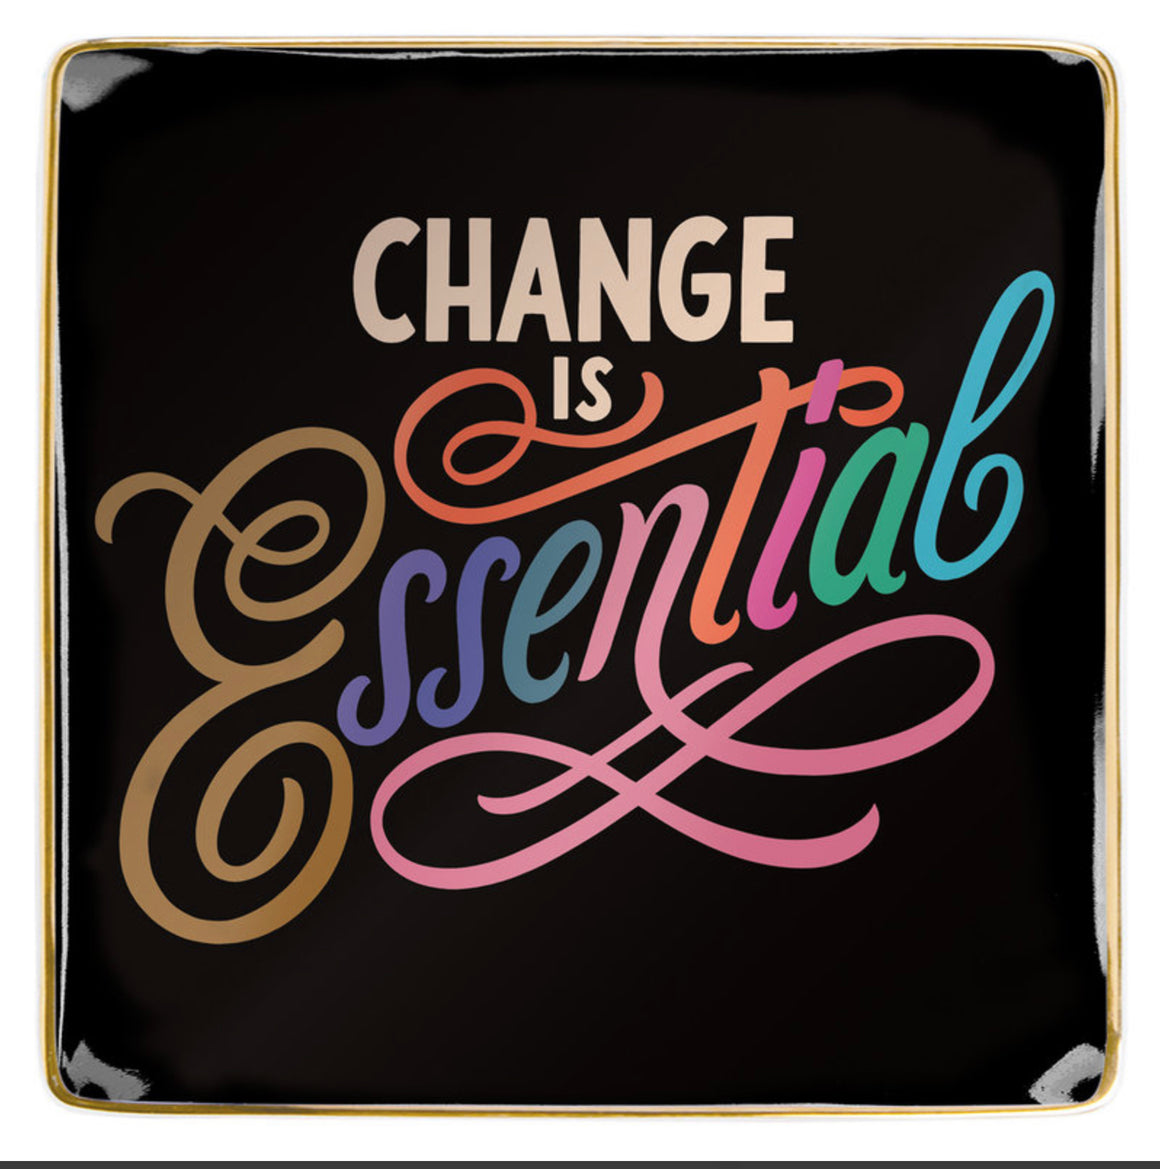 Change is Essential- Porcelain tray